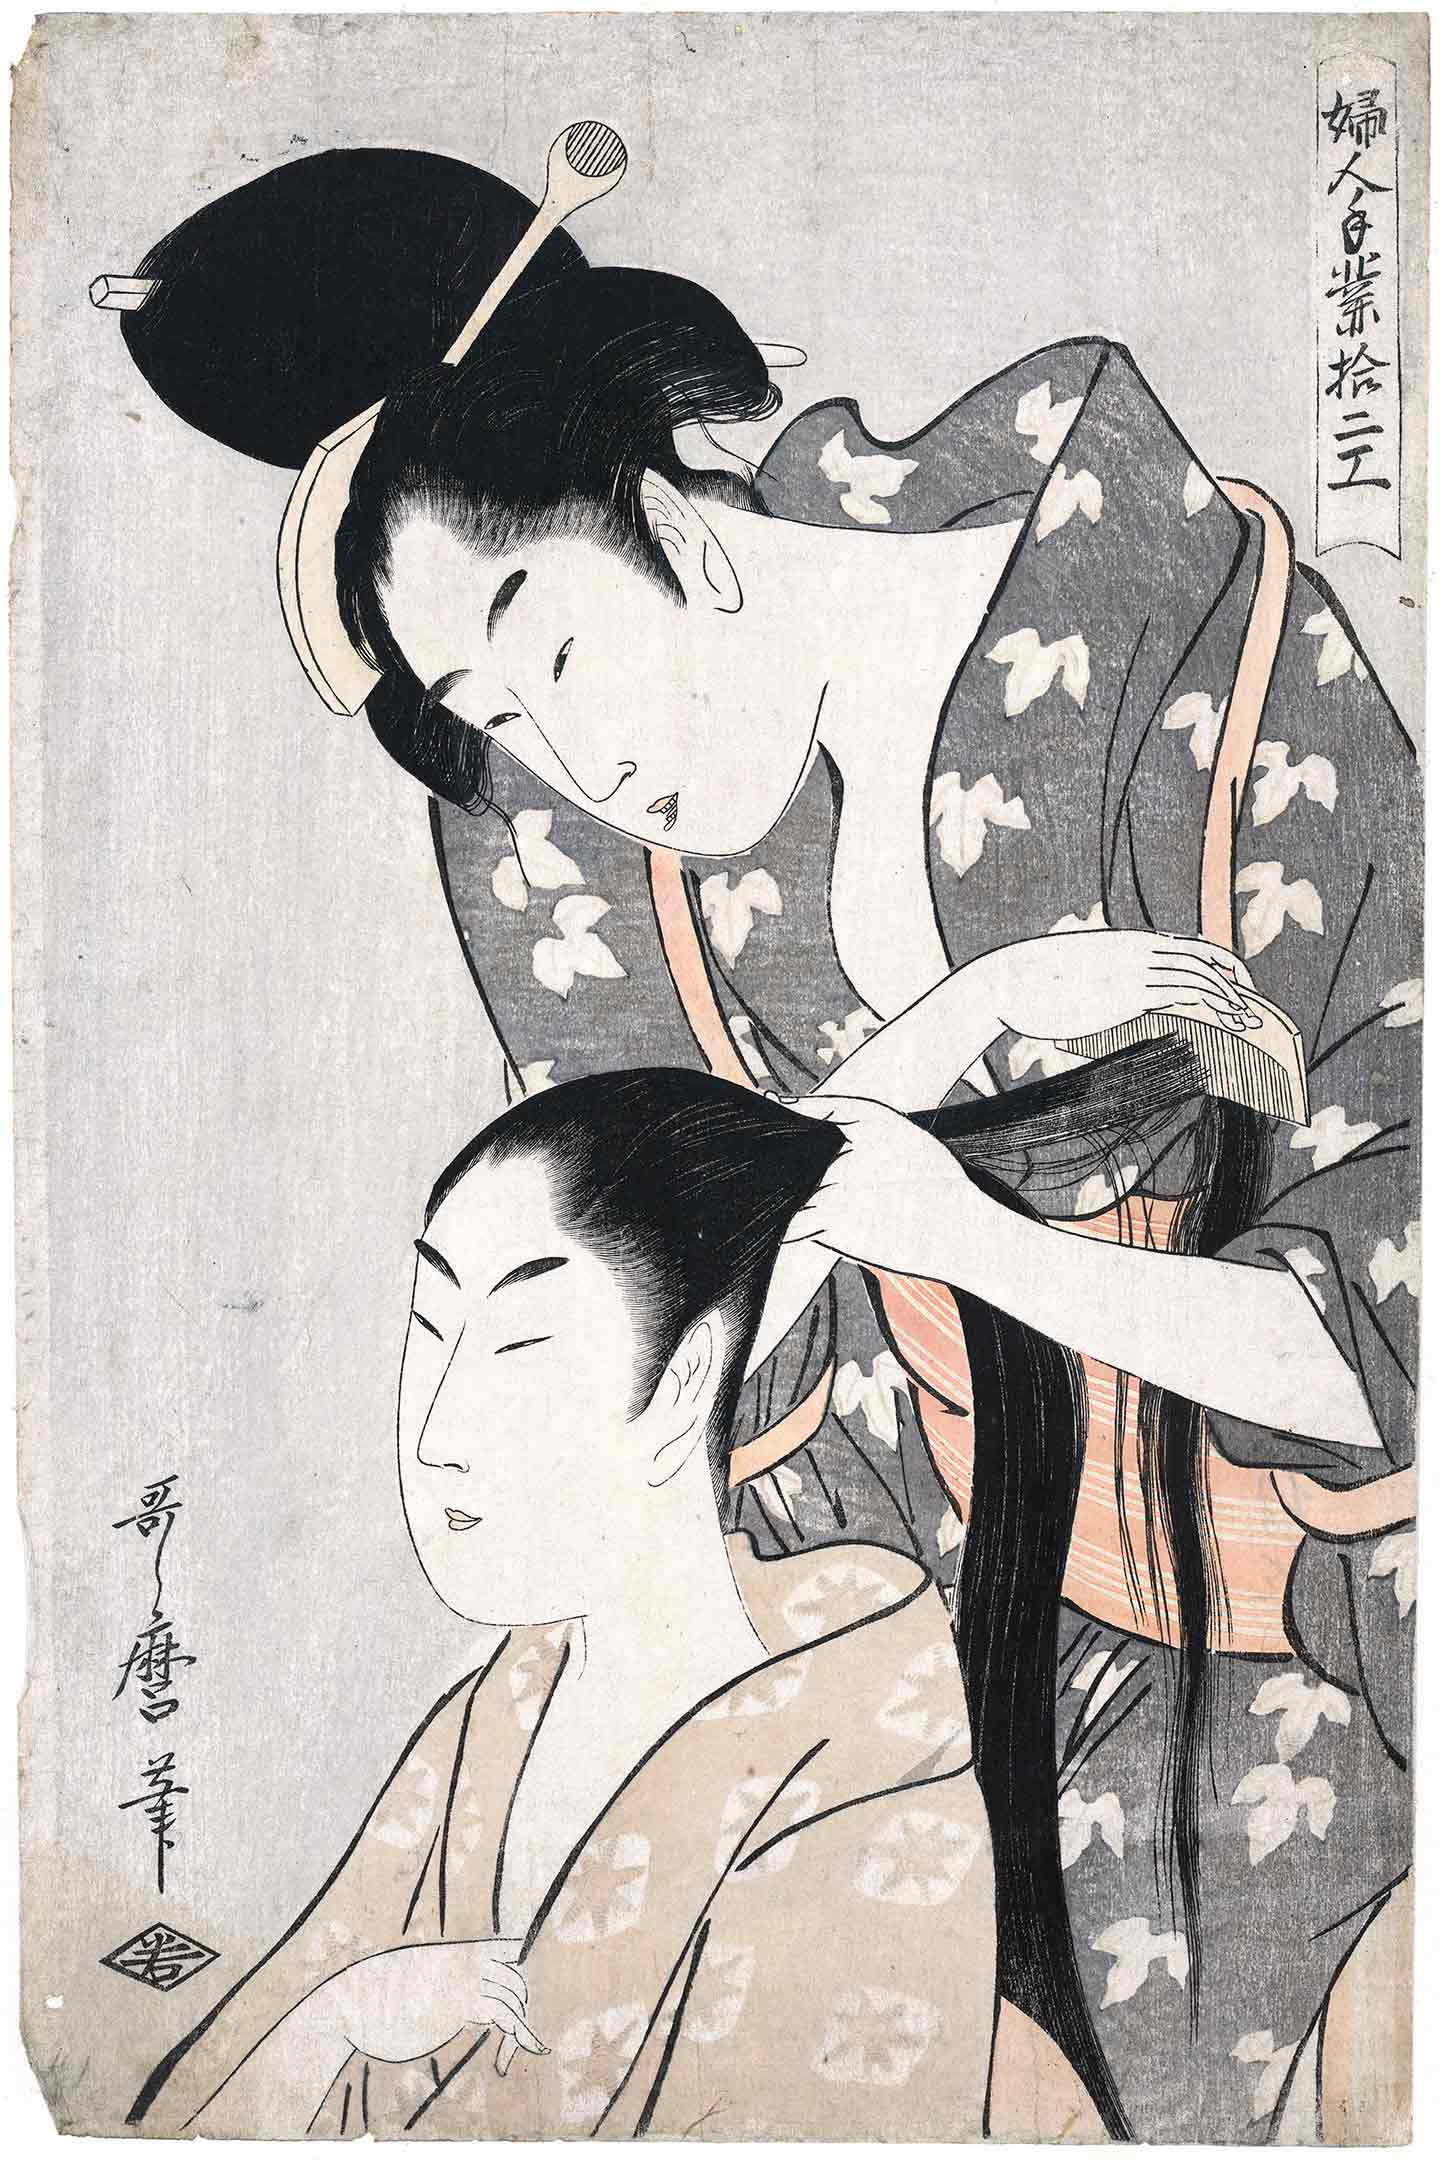 A woman combs the hair of another woman.